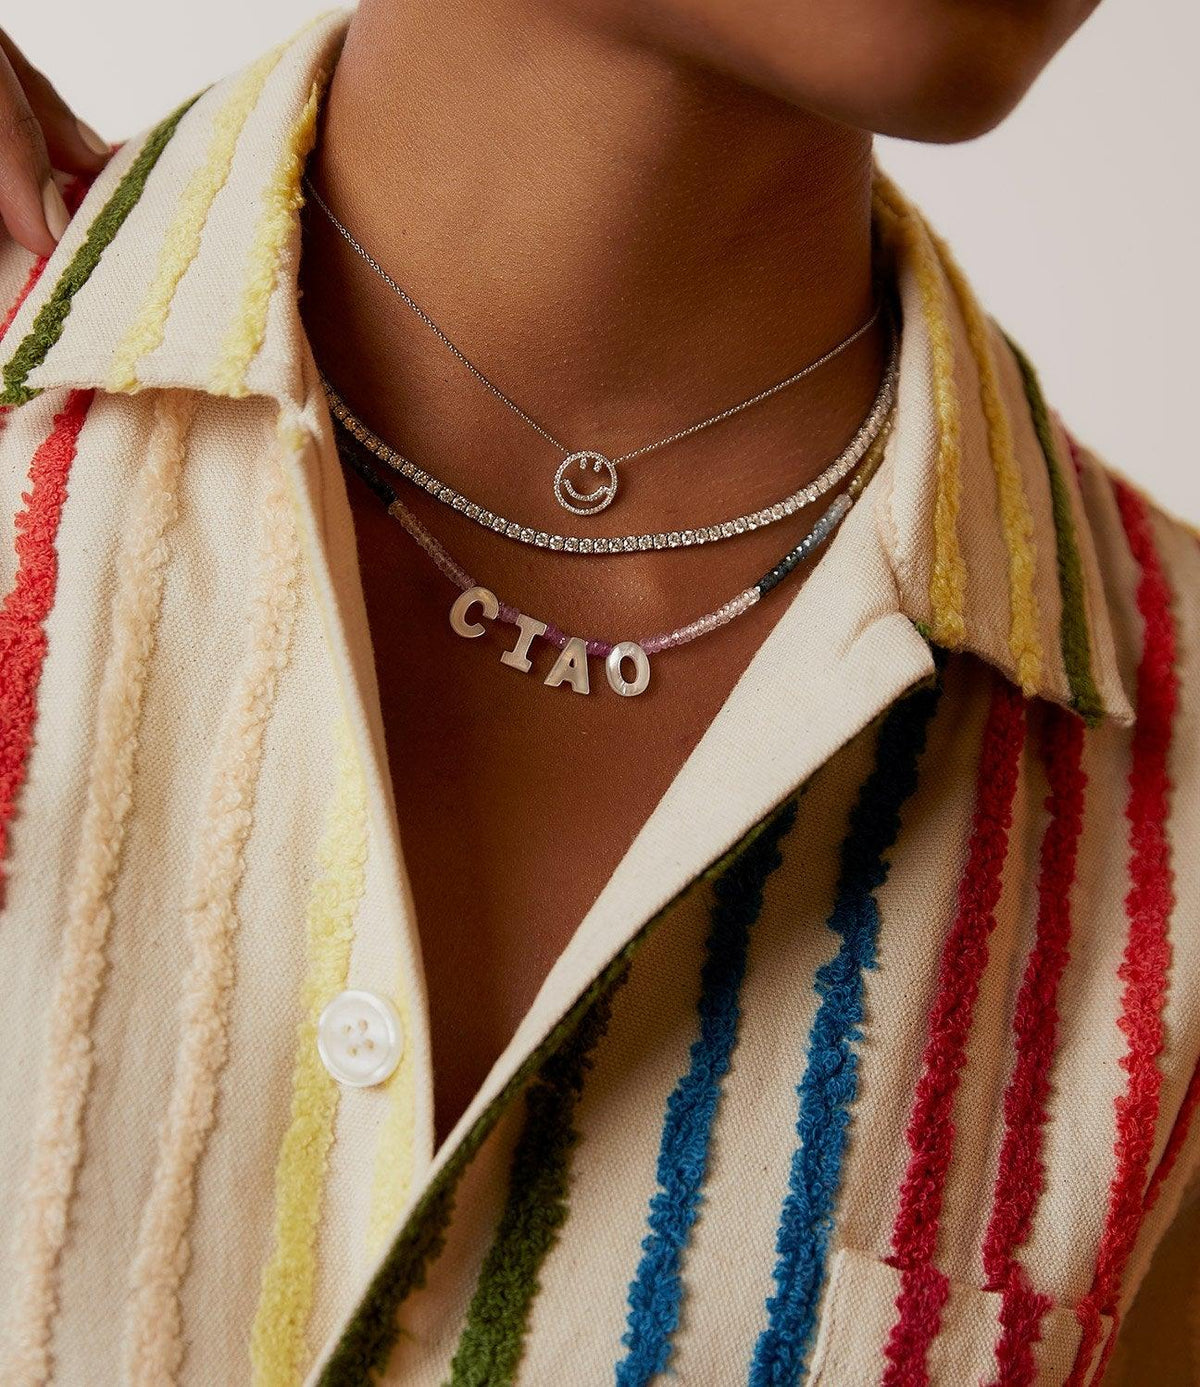 'Ciao' Necklace